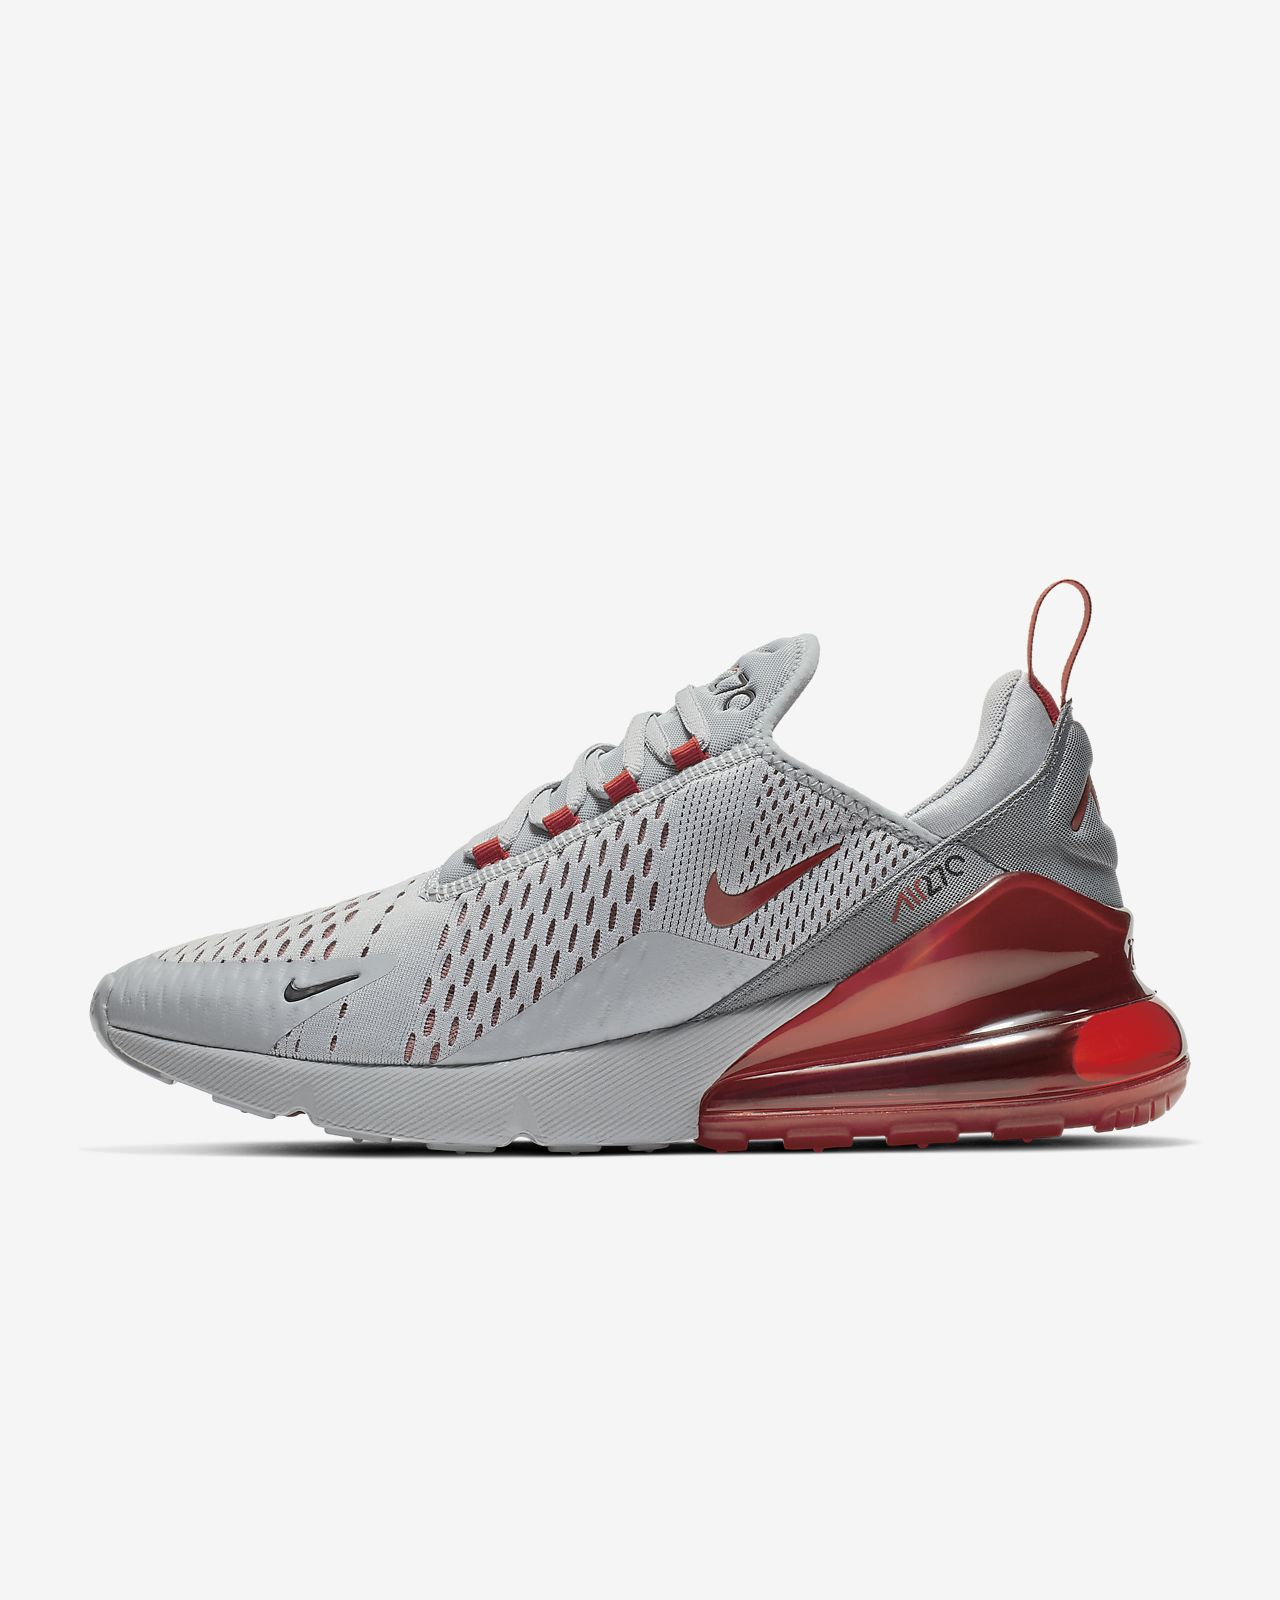 meet 30a43 e3c01 Men s Shoe. Nike Air Max 270